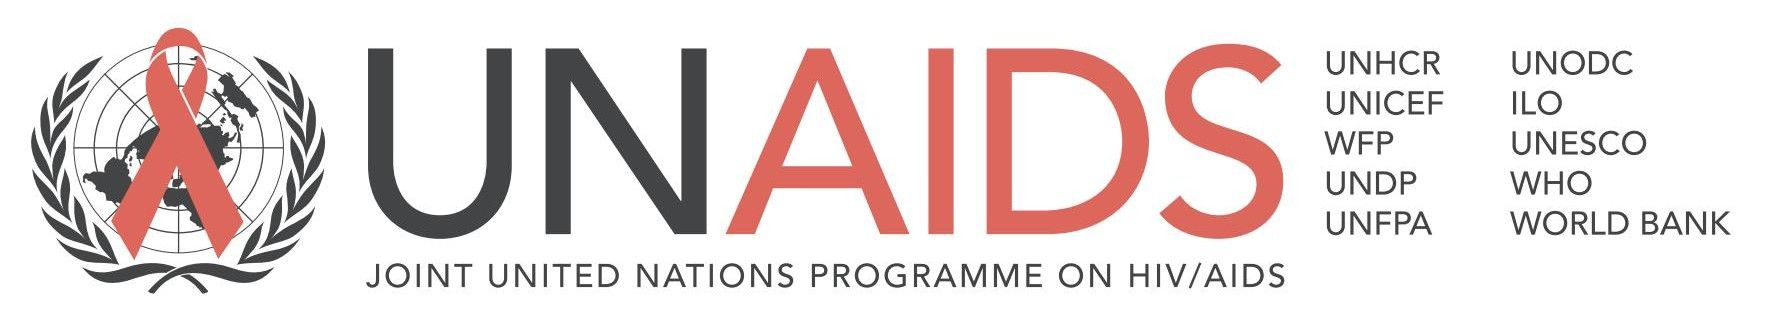 UNAIDS – Joint United Nations Programme on HIV/AIDS Logo